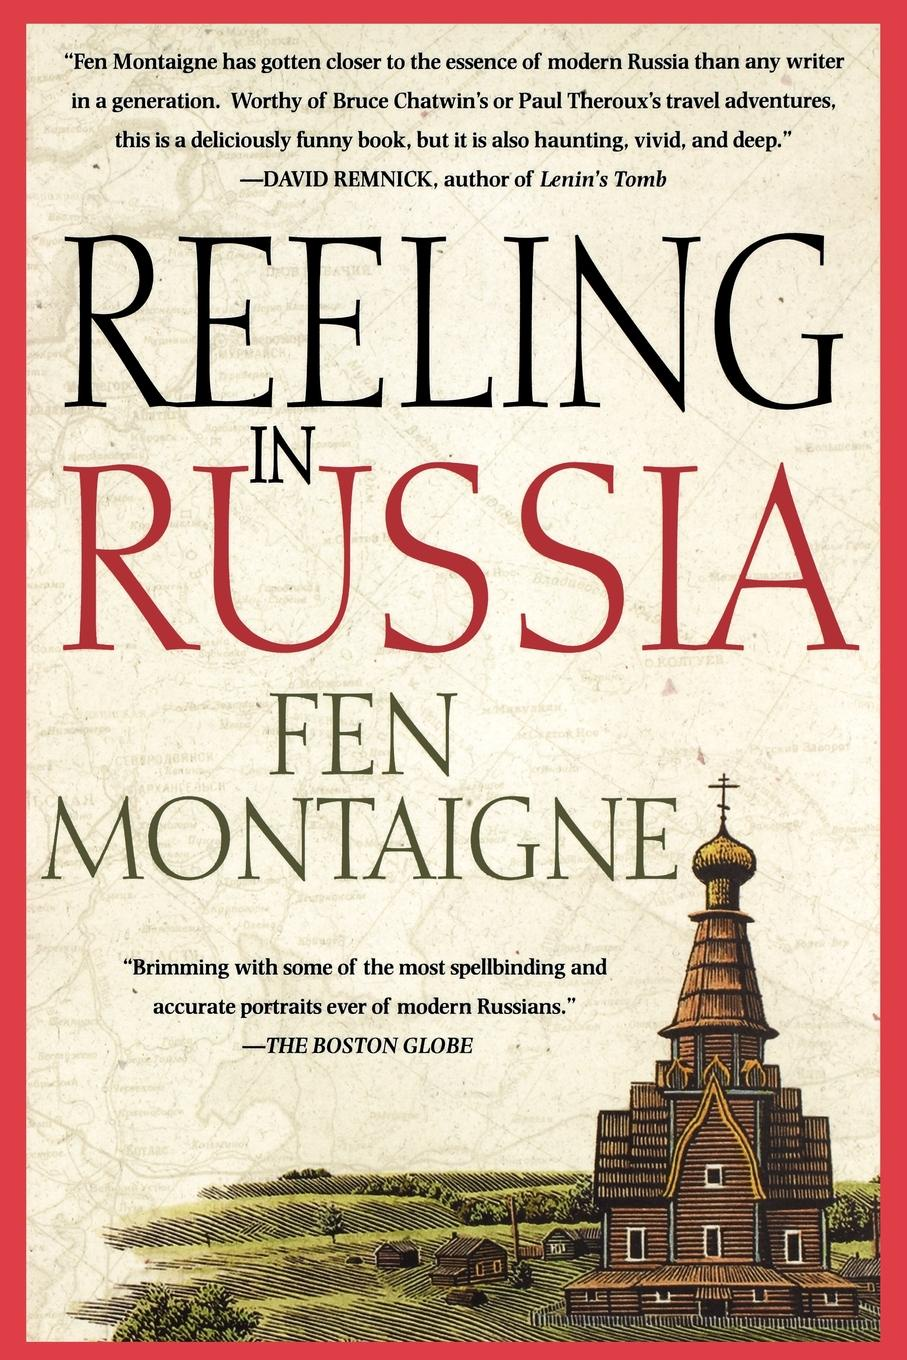 Fen Montaigne Reeling in Russia. An American Angler in Russia sergey shirin education inrussia in